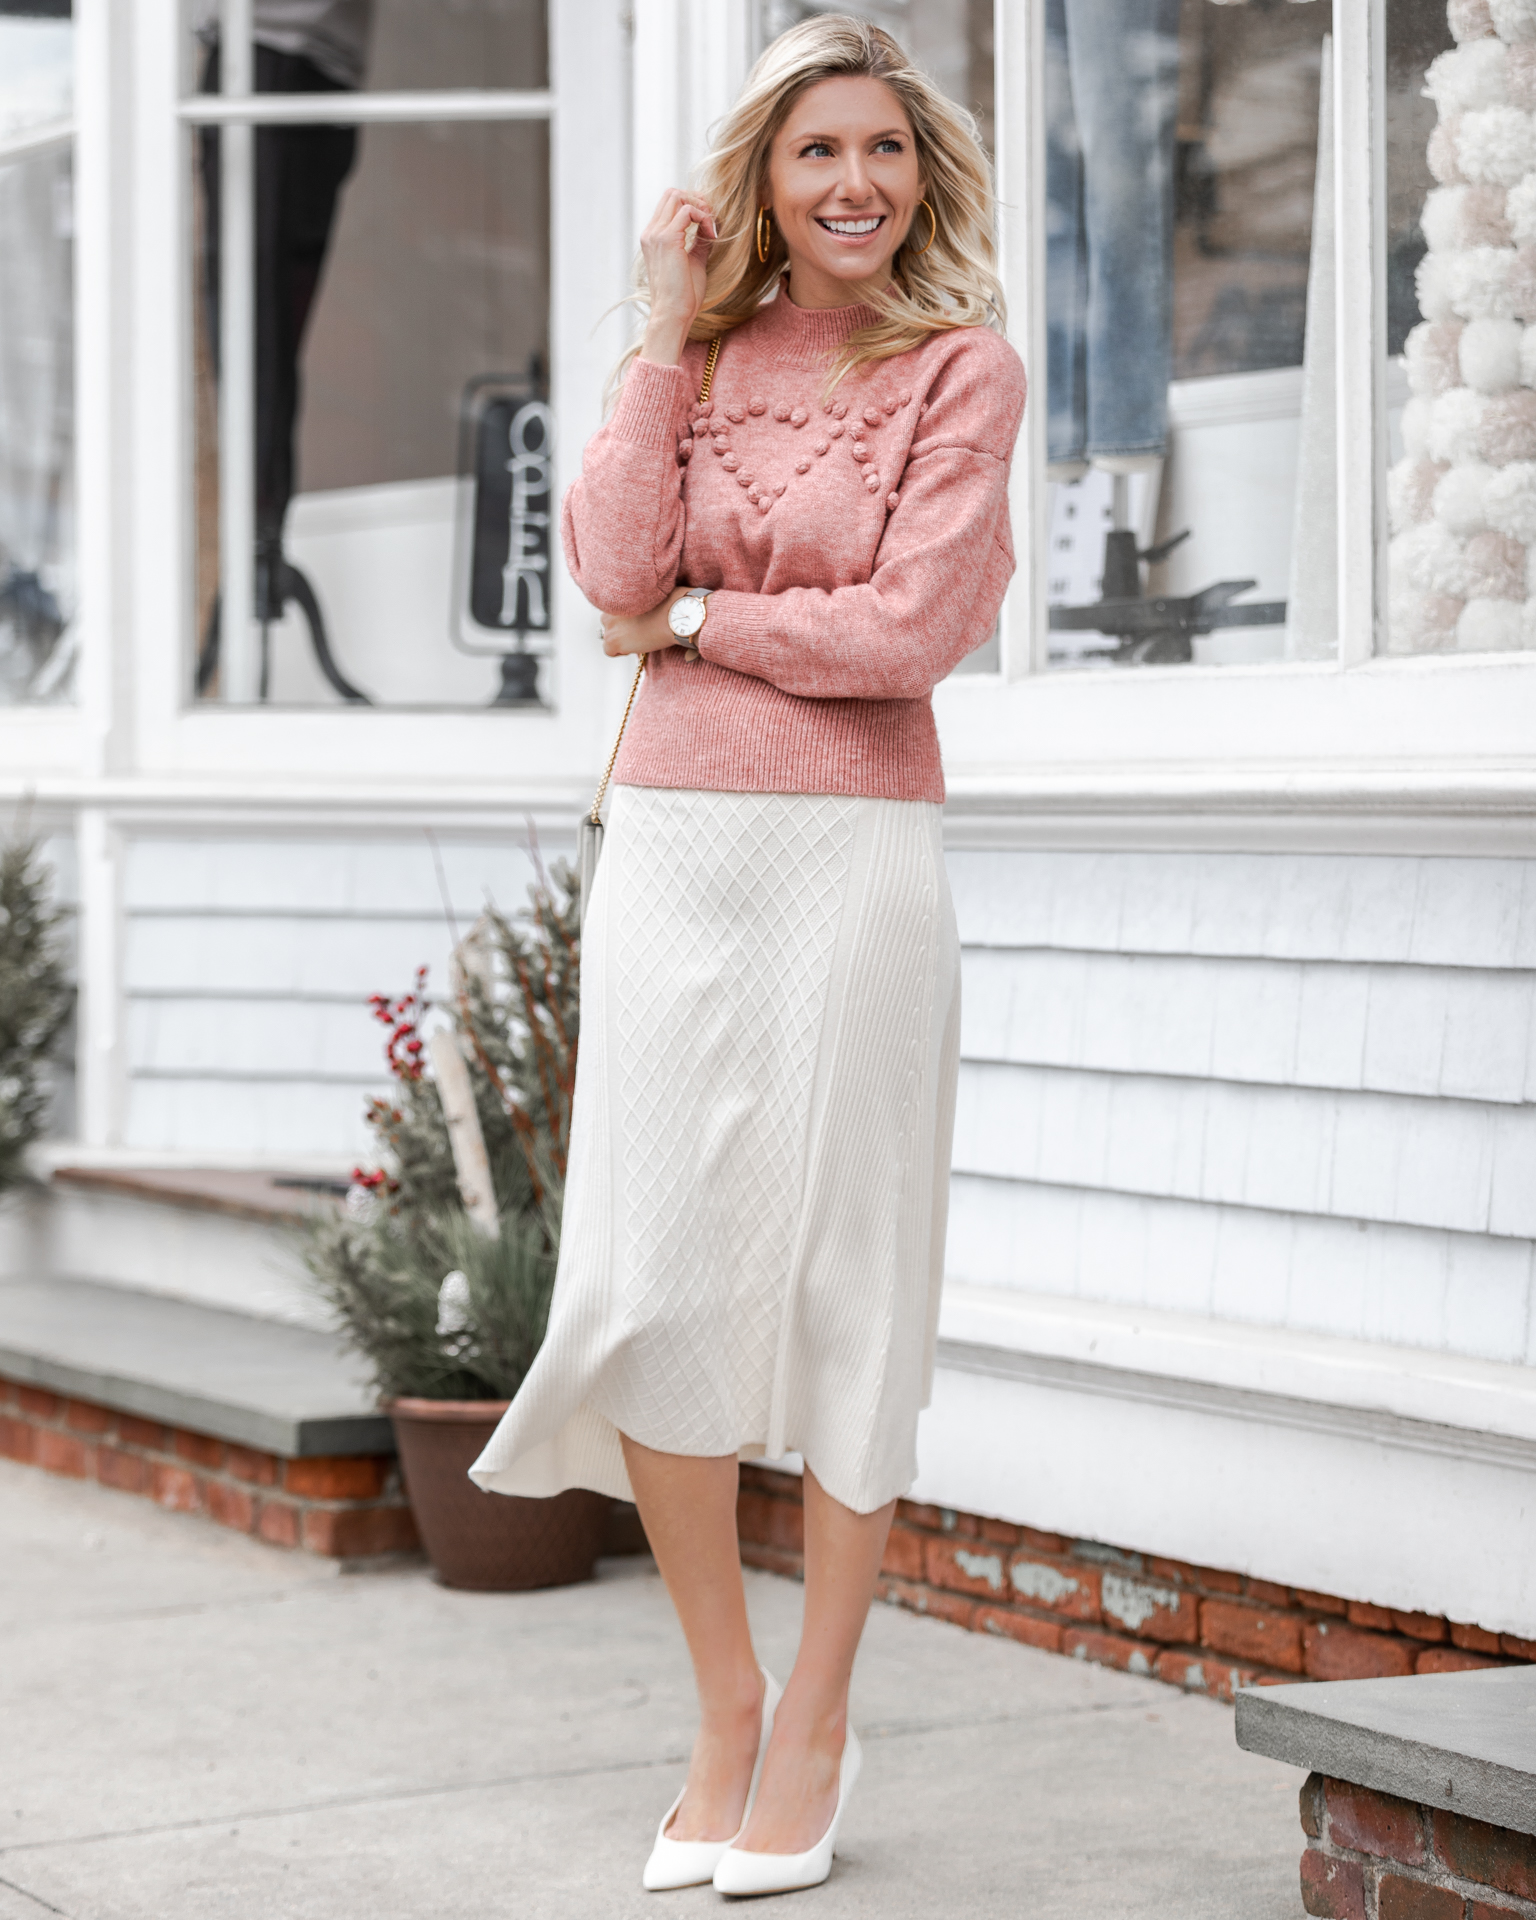 chicwish-pink-heart-sweater-and-white-knit-skirt-the-glamorous-gal